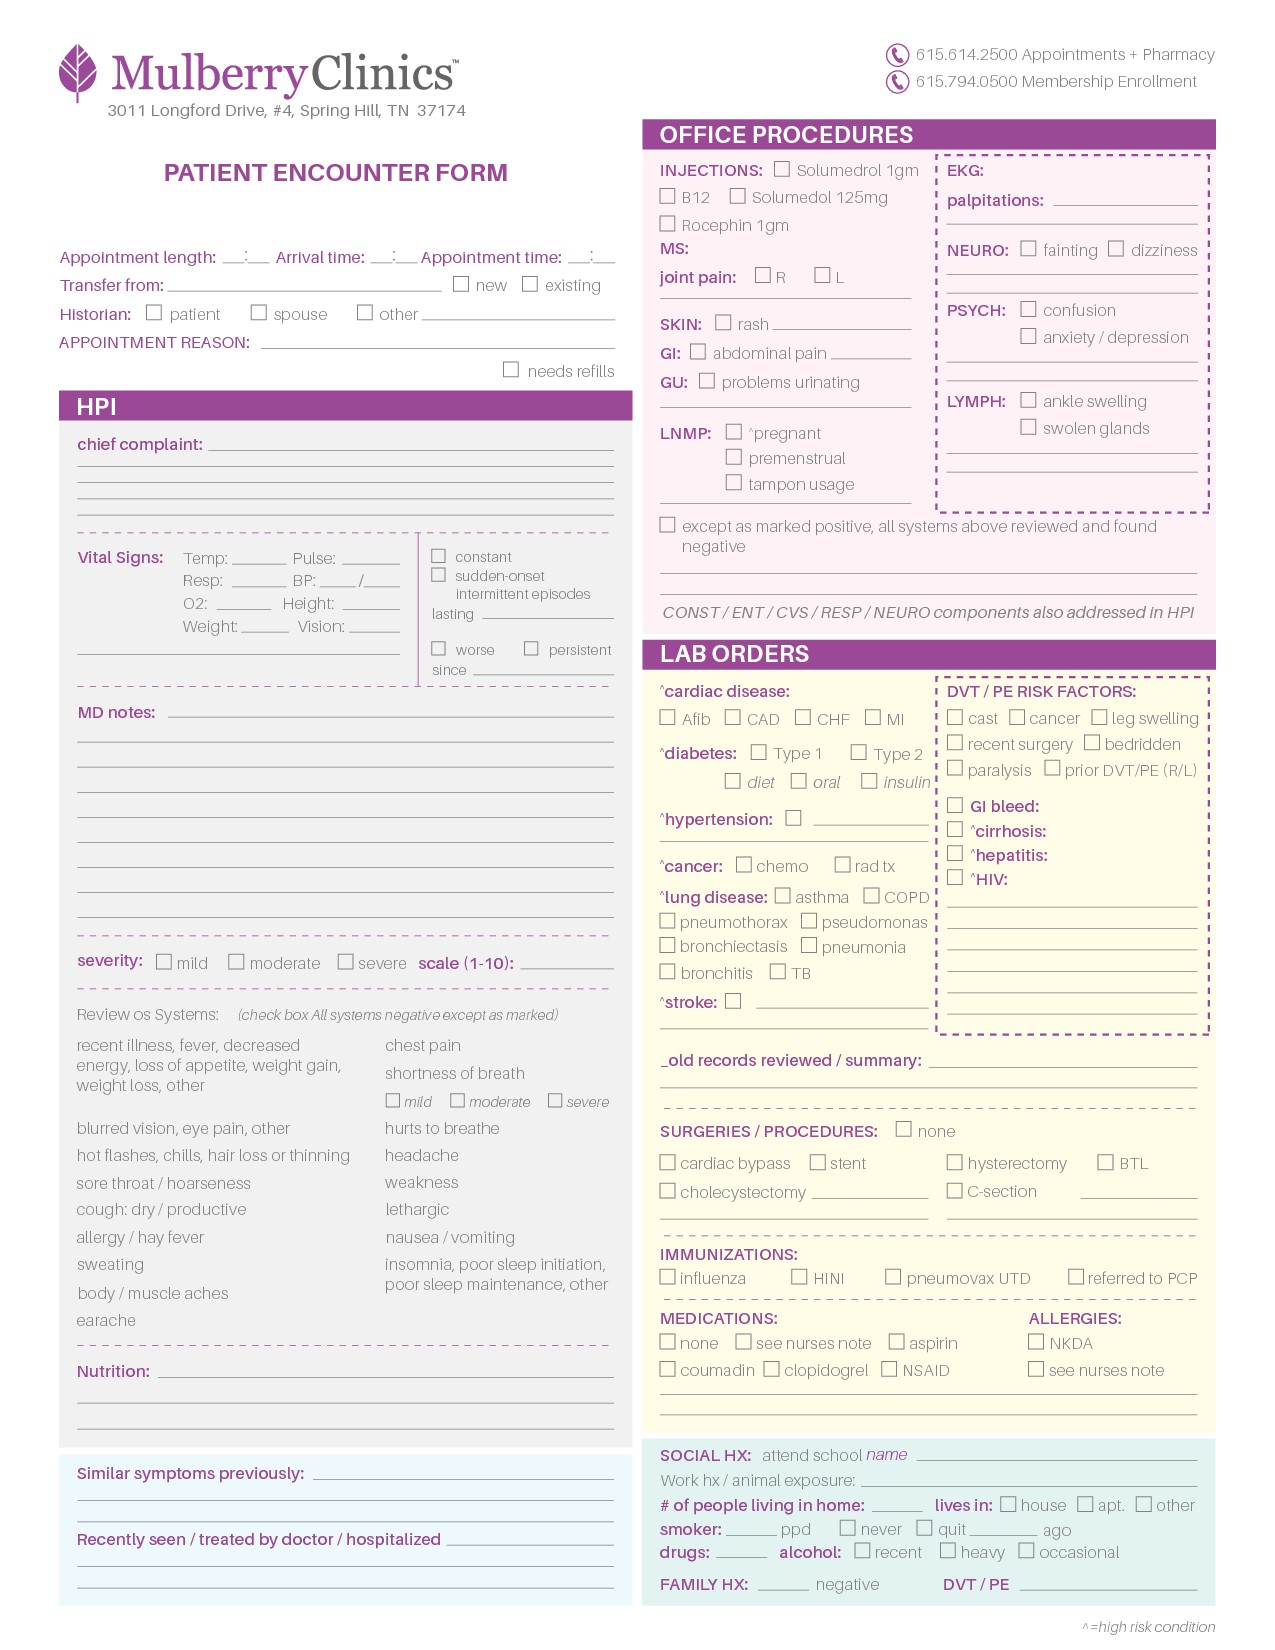 Mulberry Clinics Intake form